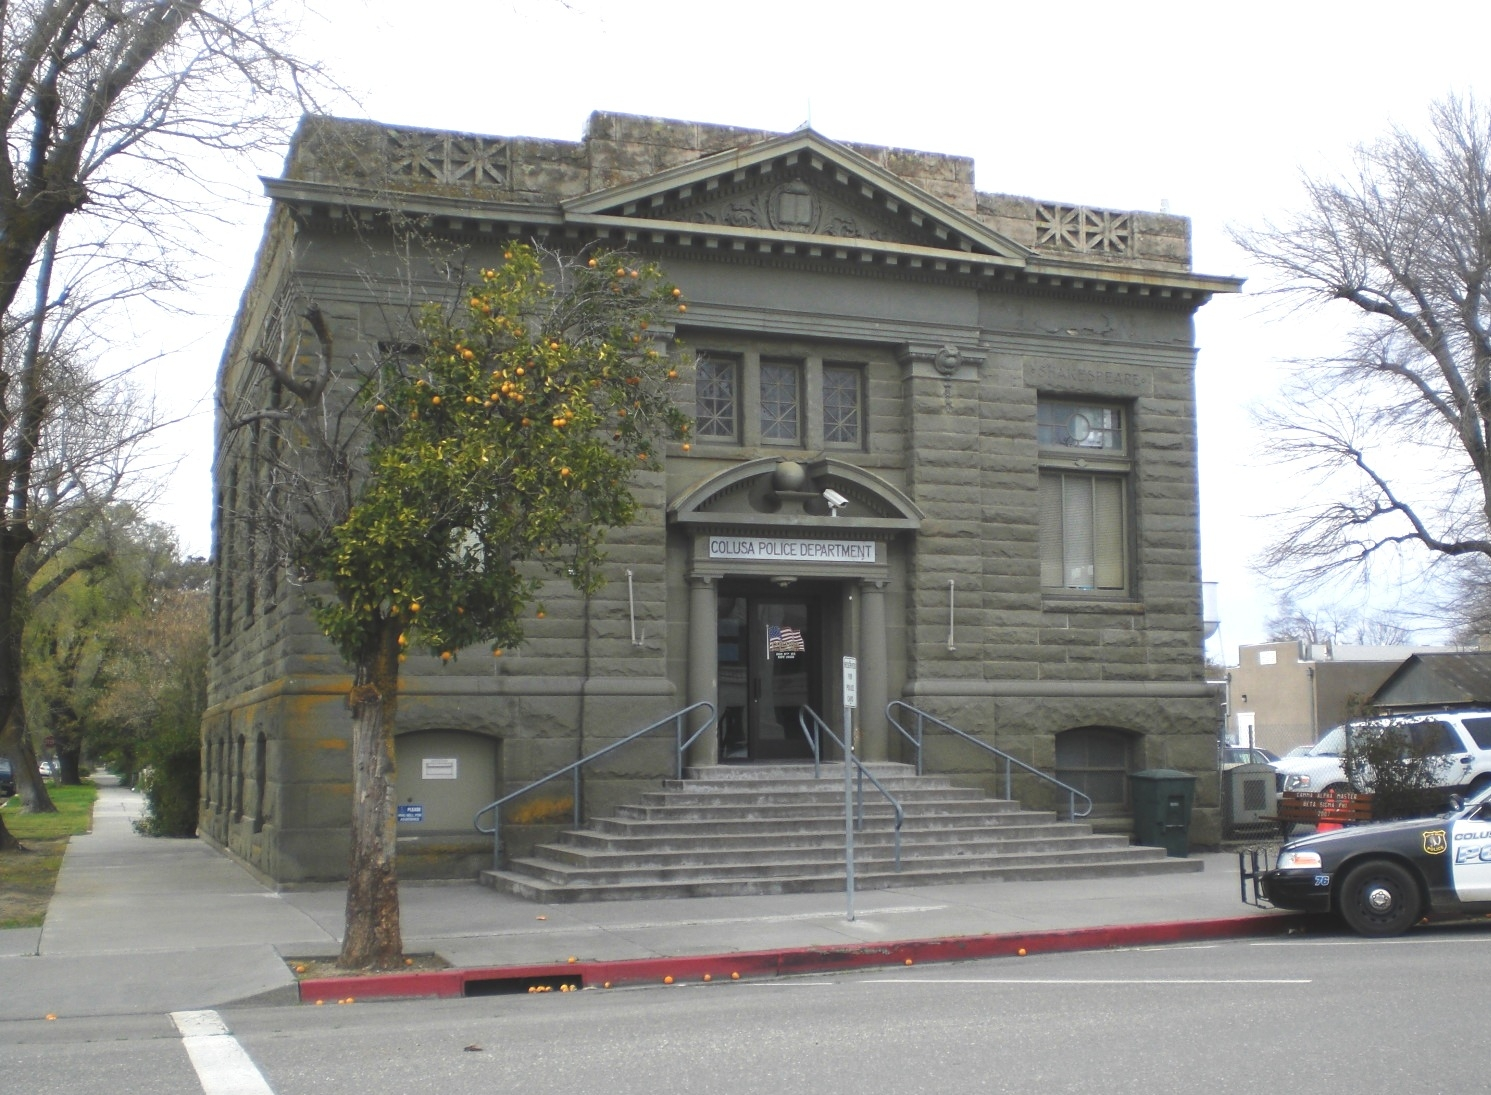 Colusa Carnegie Library (Constructed 1906)